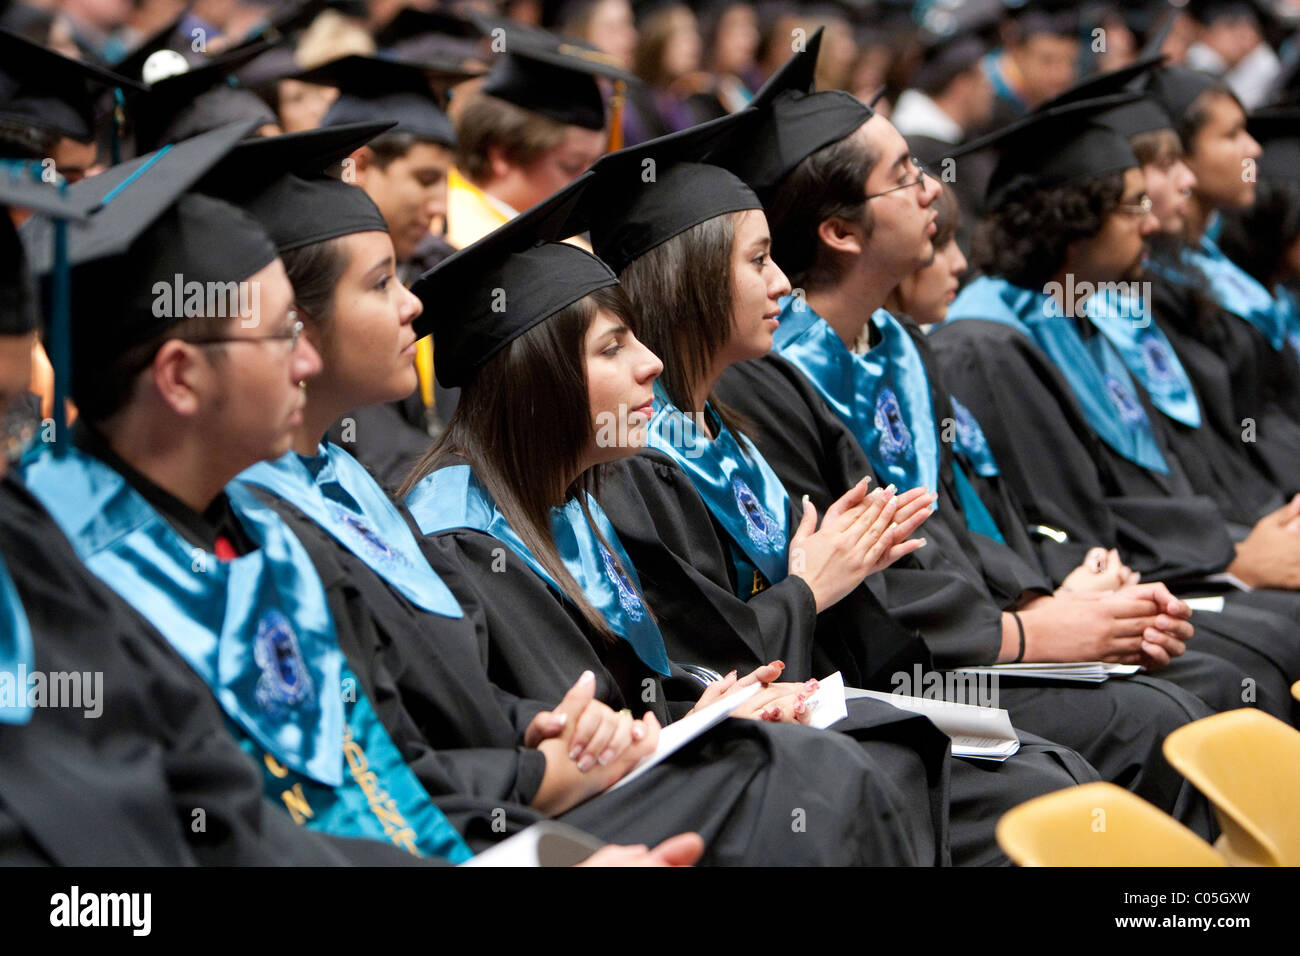 High school seniors in caps and gowns sitting in a row wait to ...